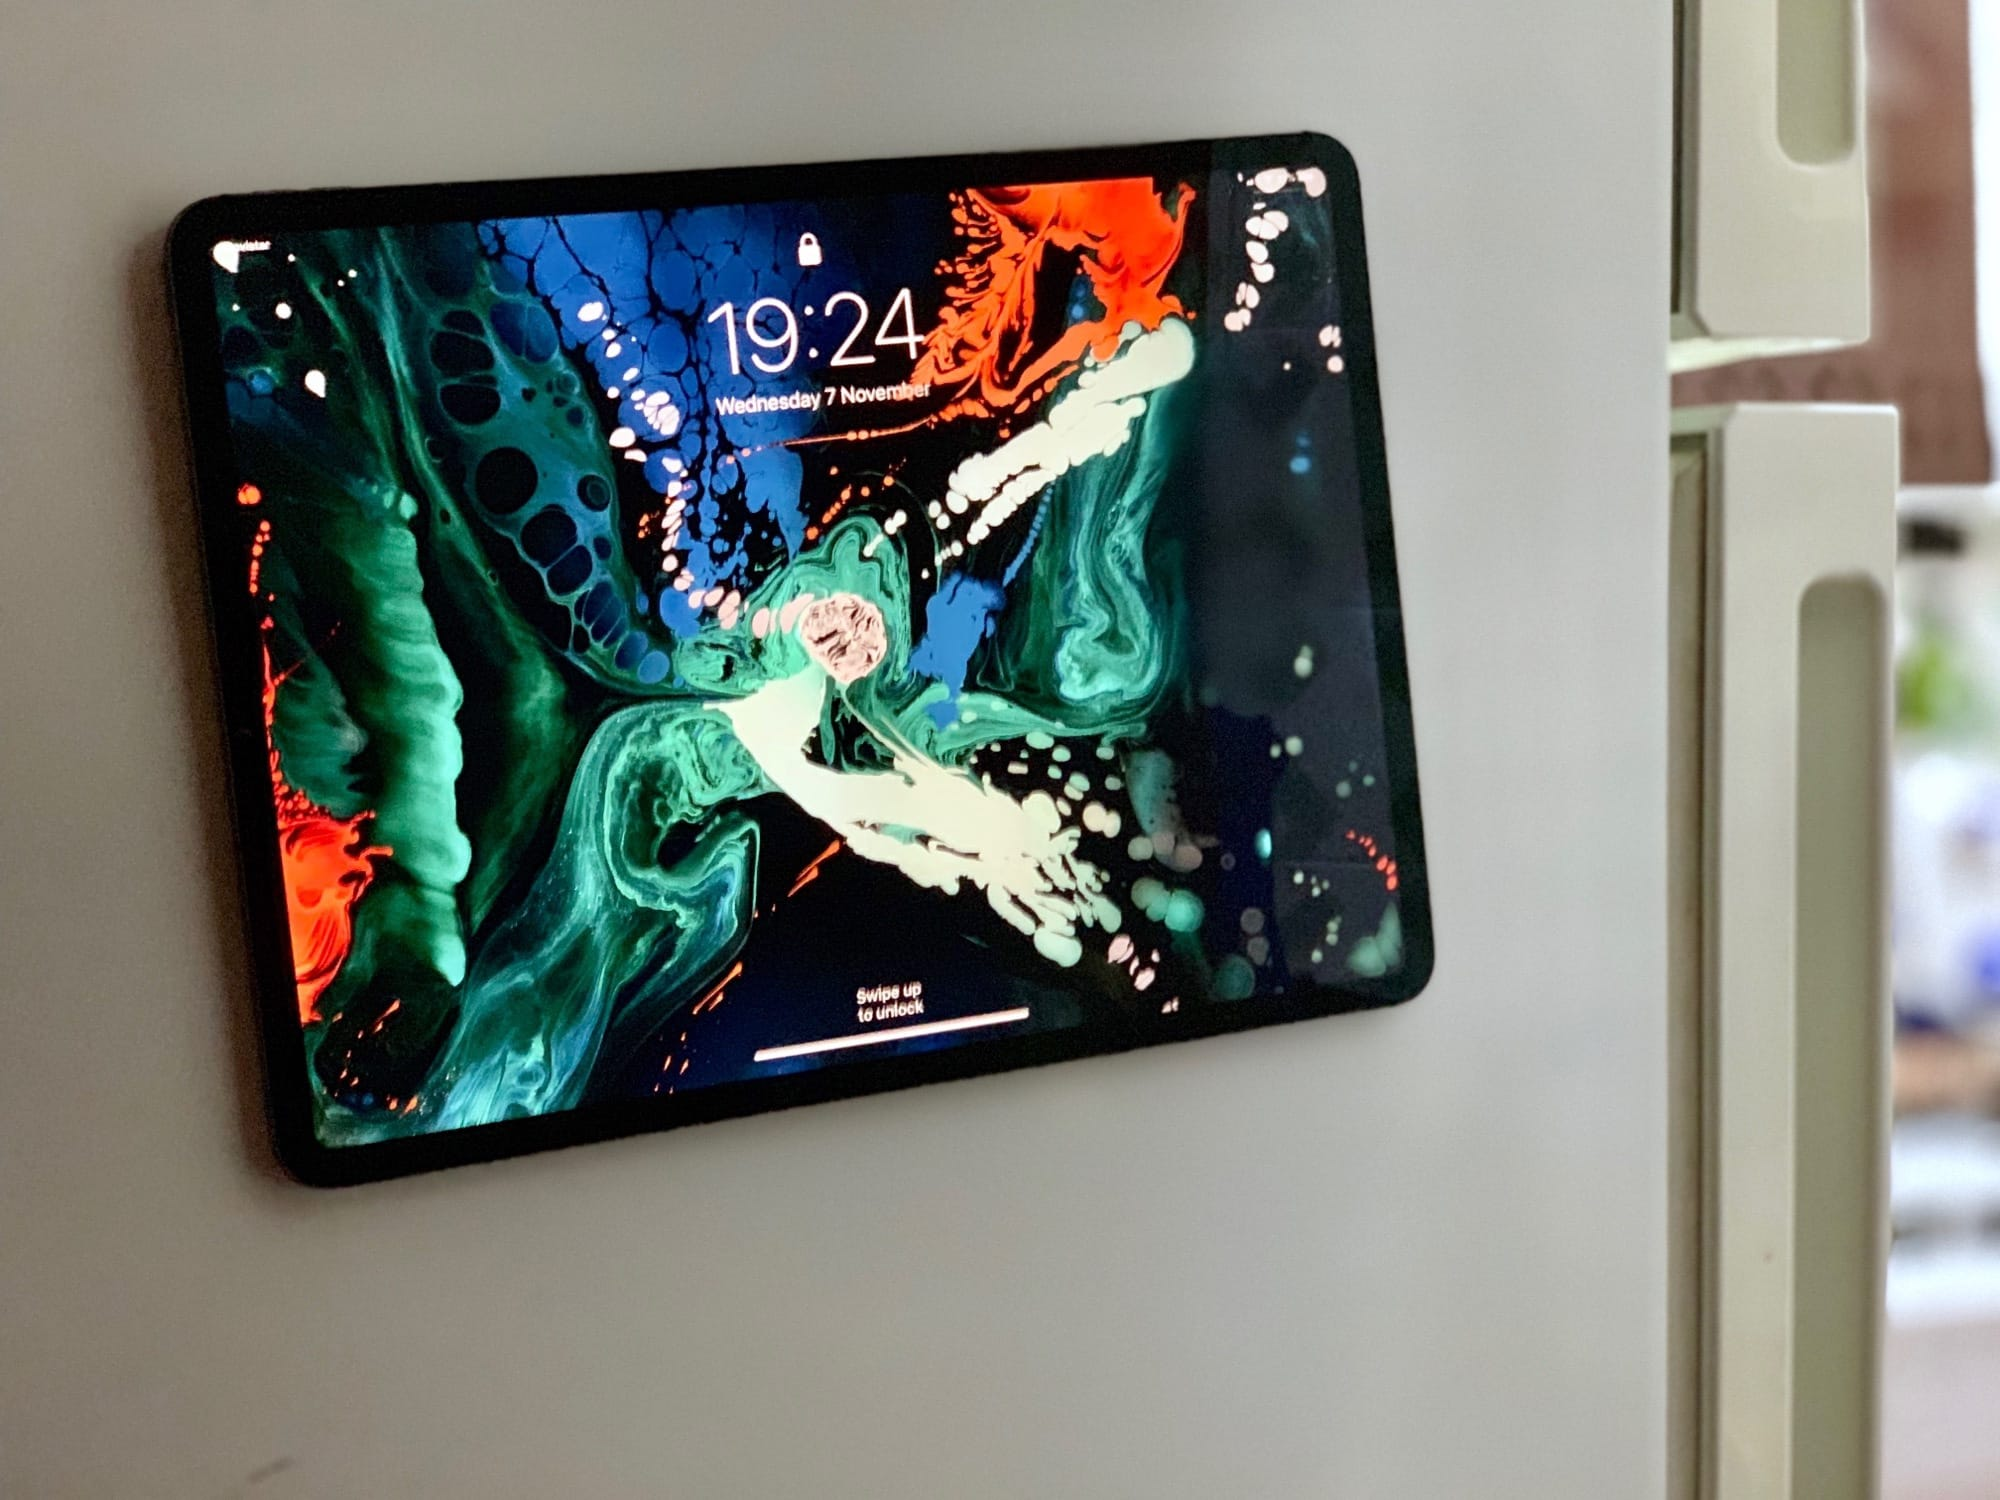 You can attach iPad Pro to a refrigerator thanks to magnets. But don't try this at home.